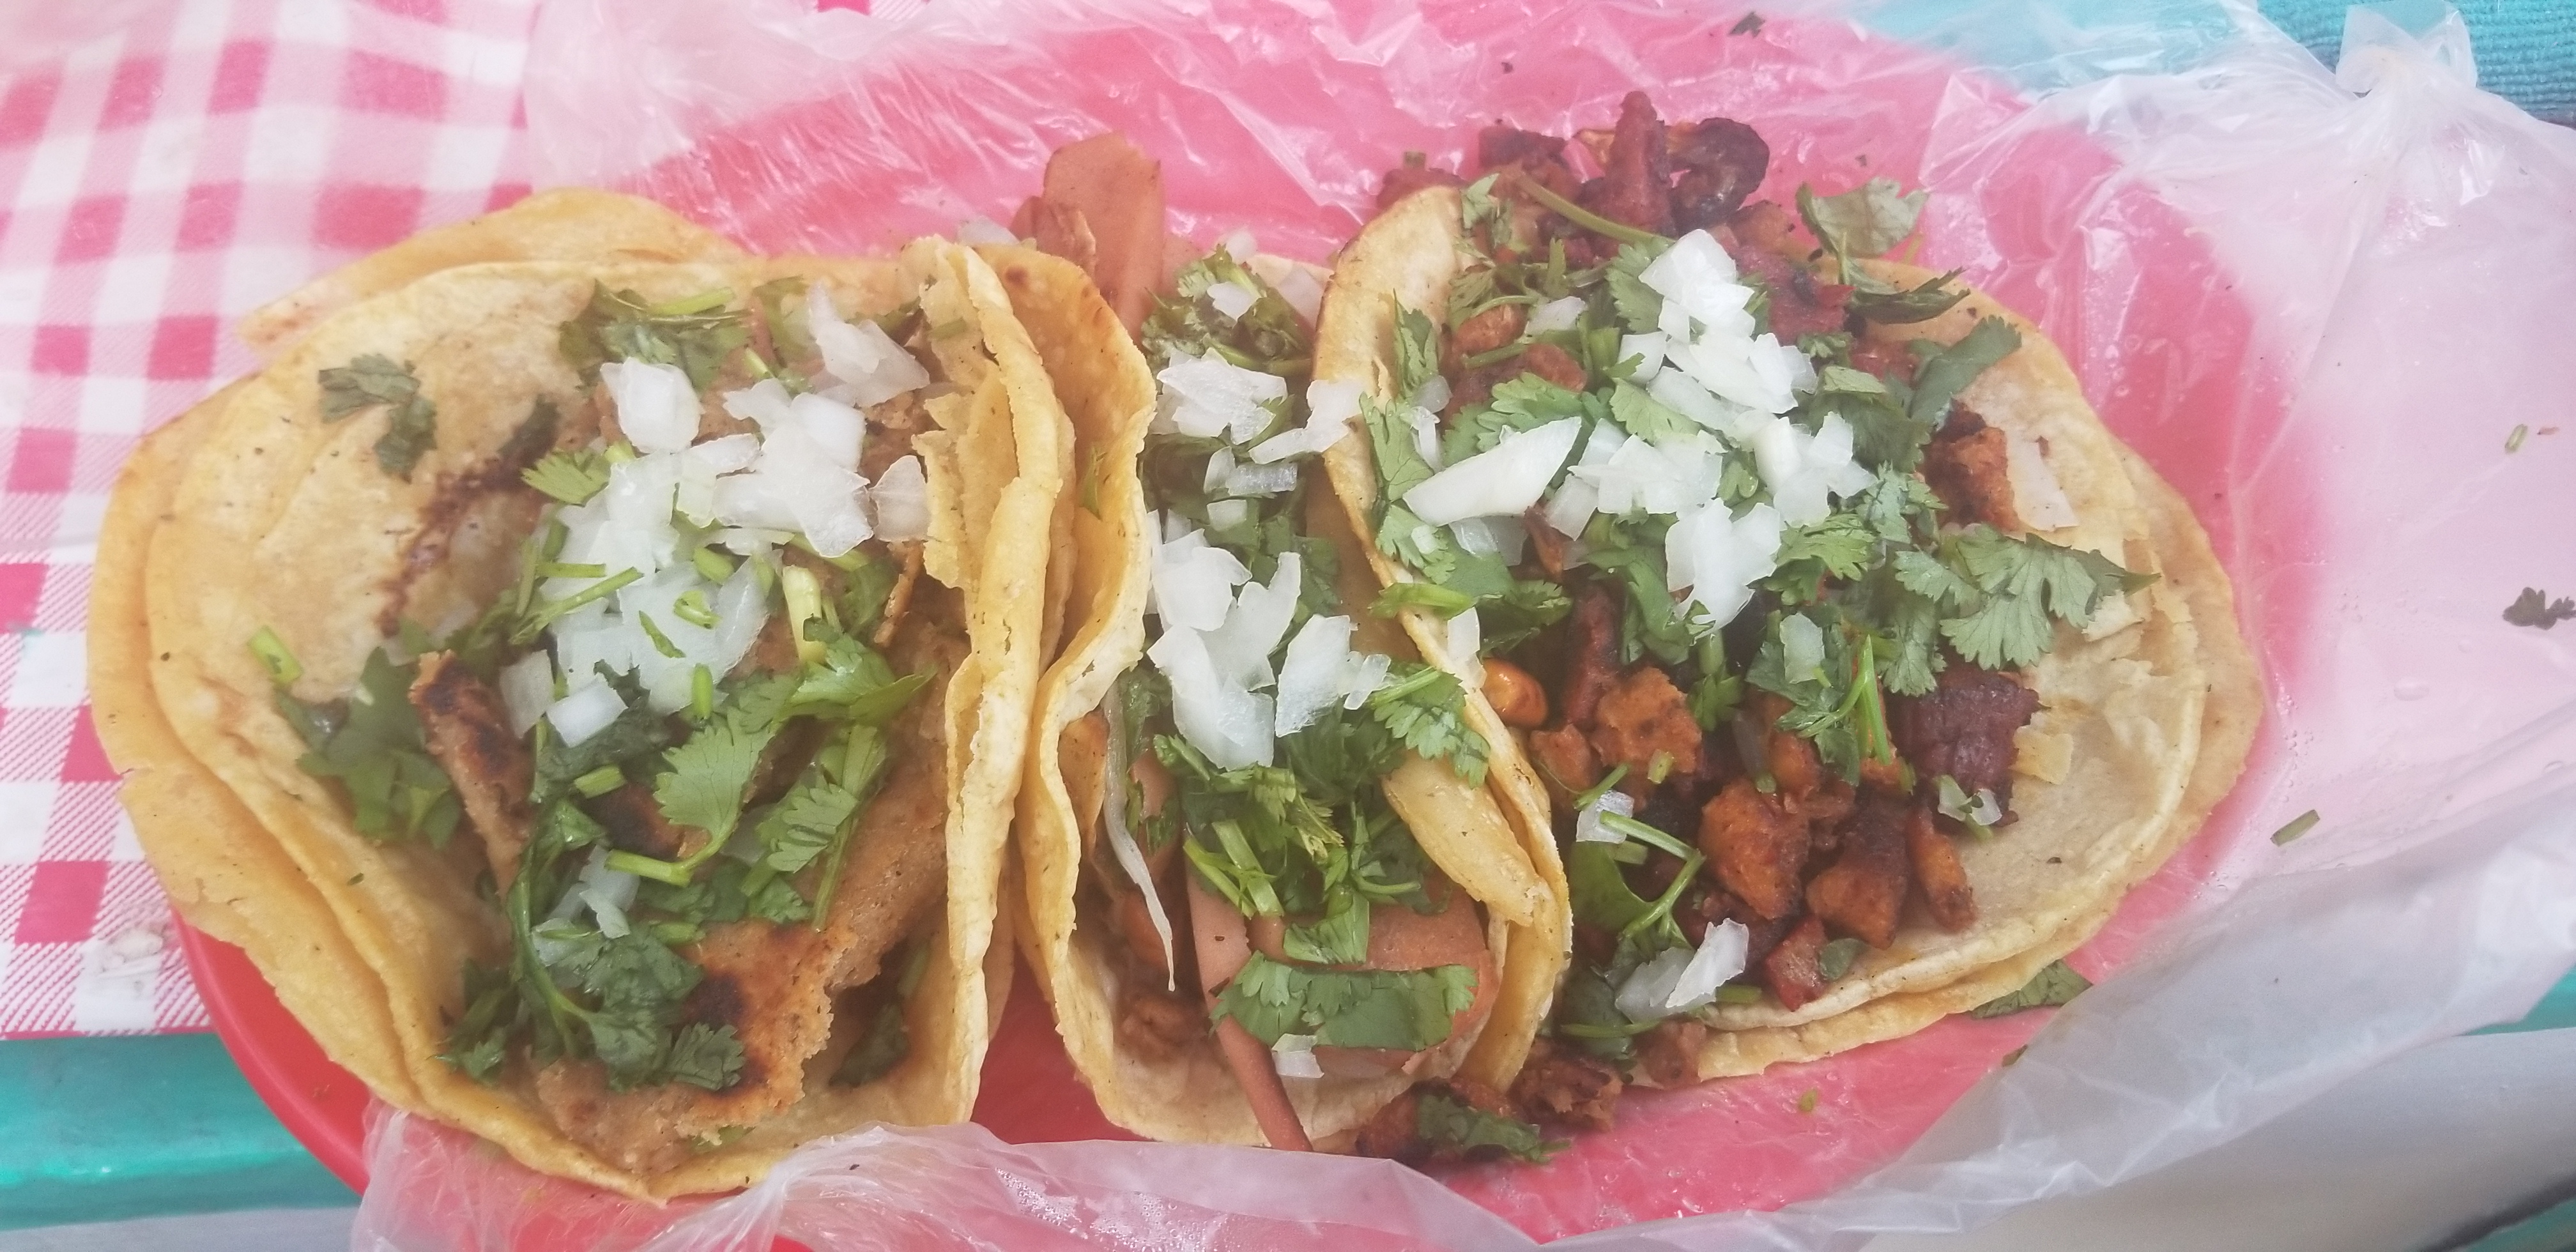 Three tacos from Gatorta